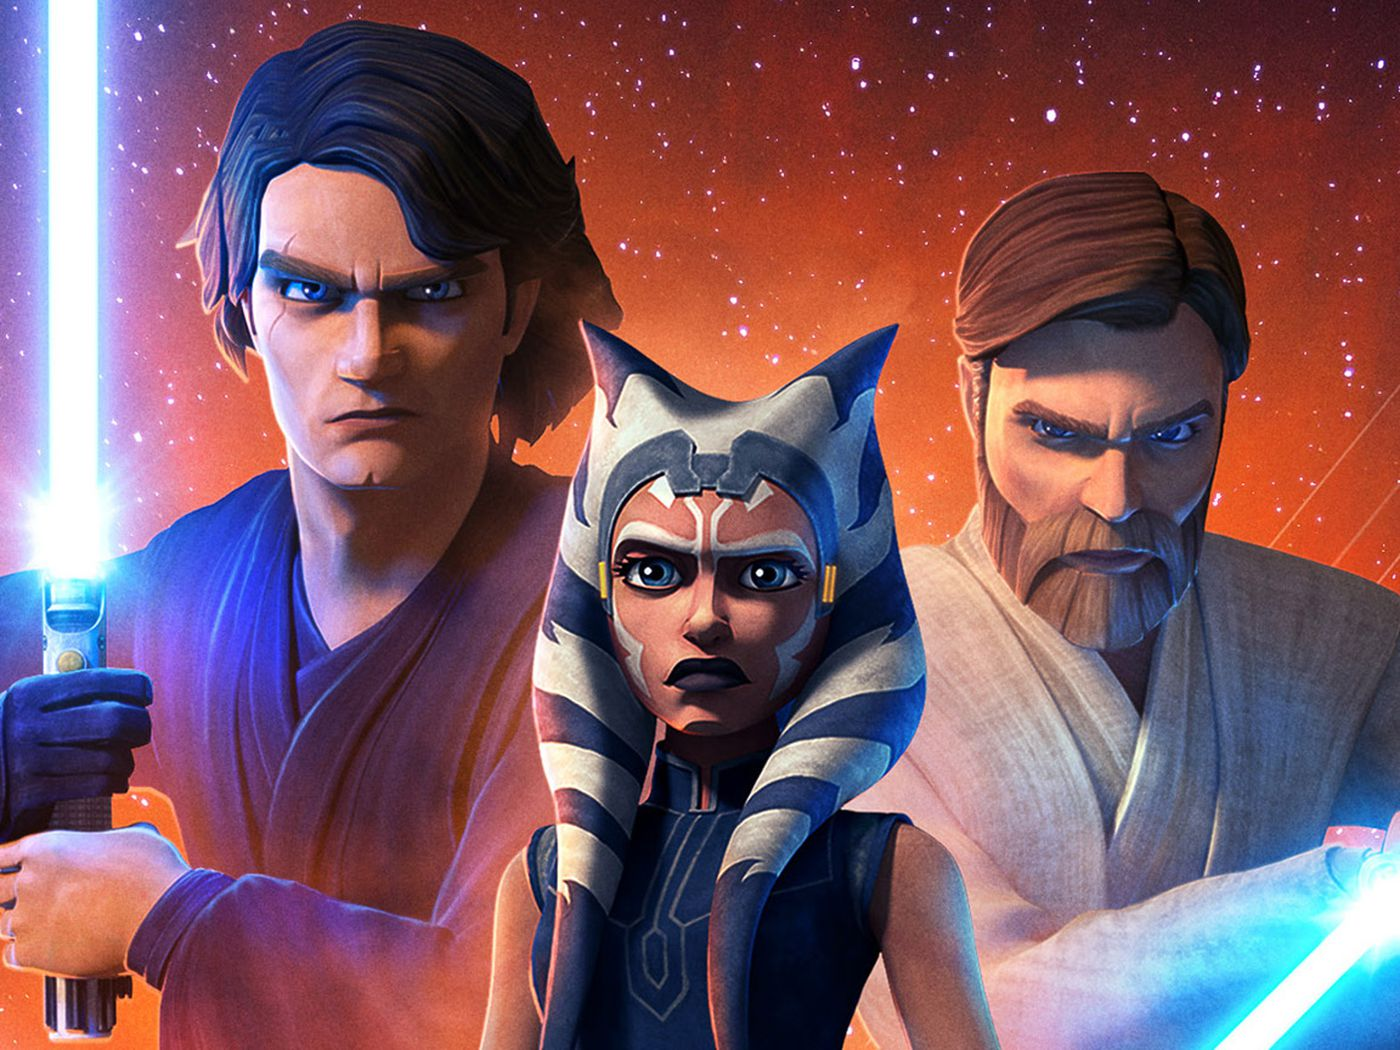 The Final Season Of Star Wars The Clone Wars Gets A New Trailer And February Release Date The Verge